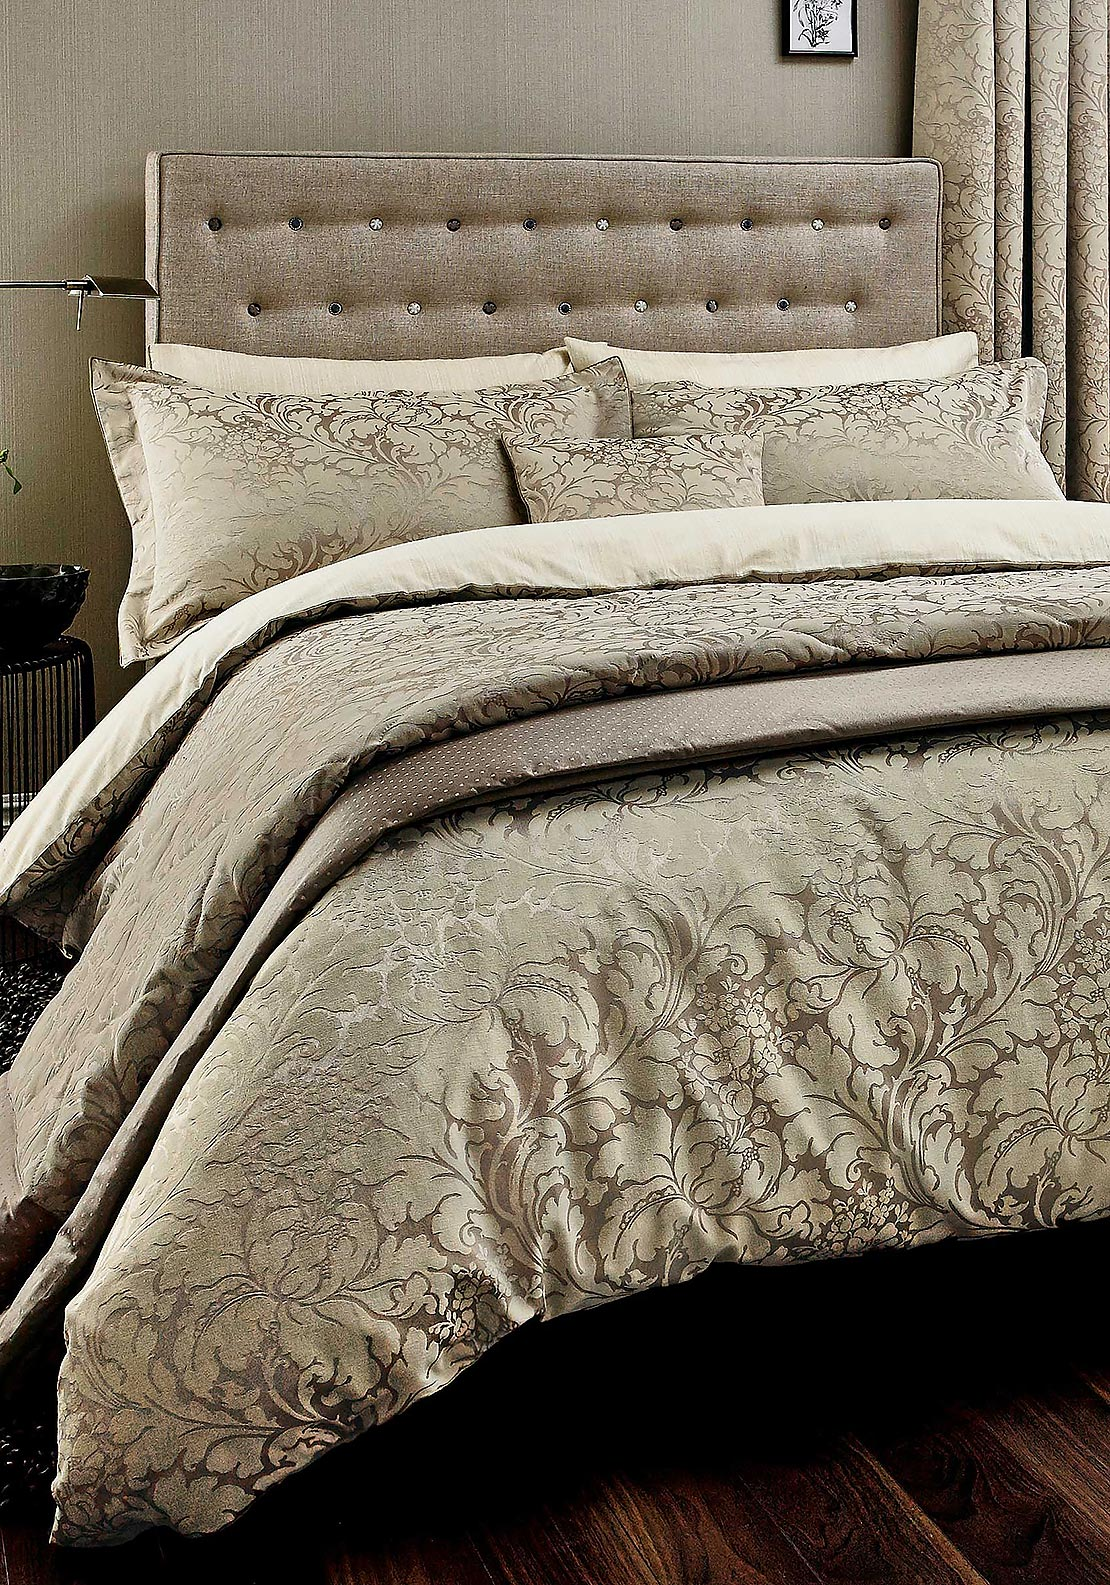 Sanderson Eleanor Jacquard Duvet Cover, Gold